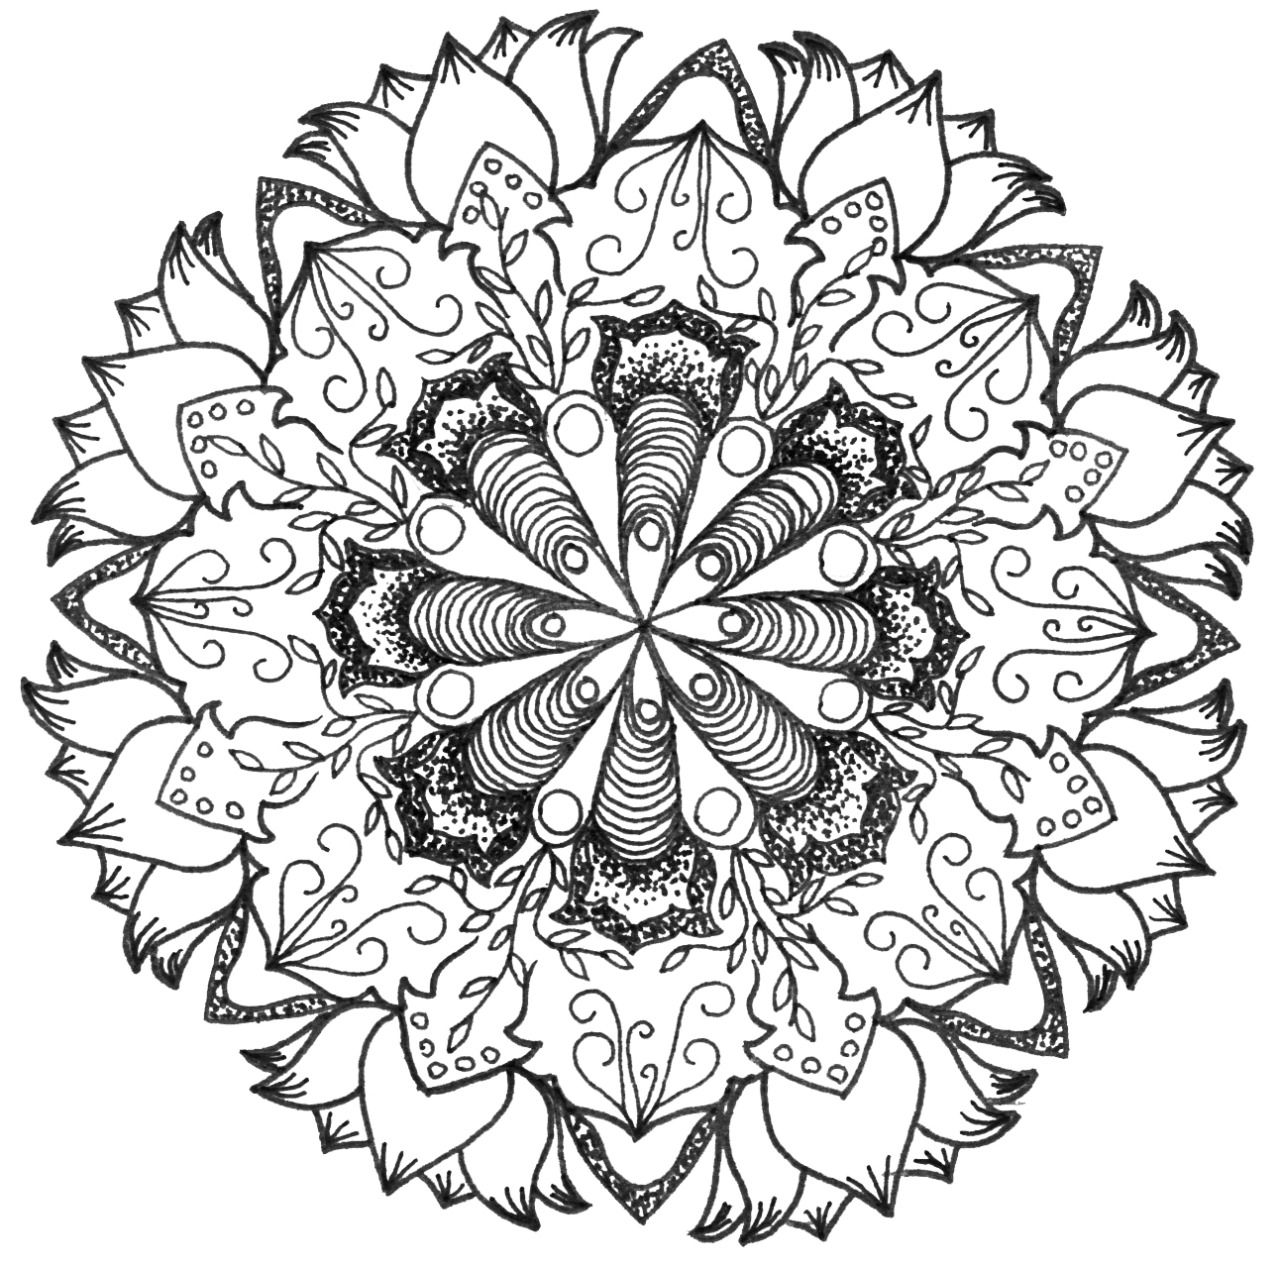 Mandala Abstract Doodle Zentangle Coloring Pages Colouring Adult Detailed Advanced Printable